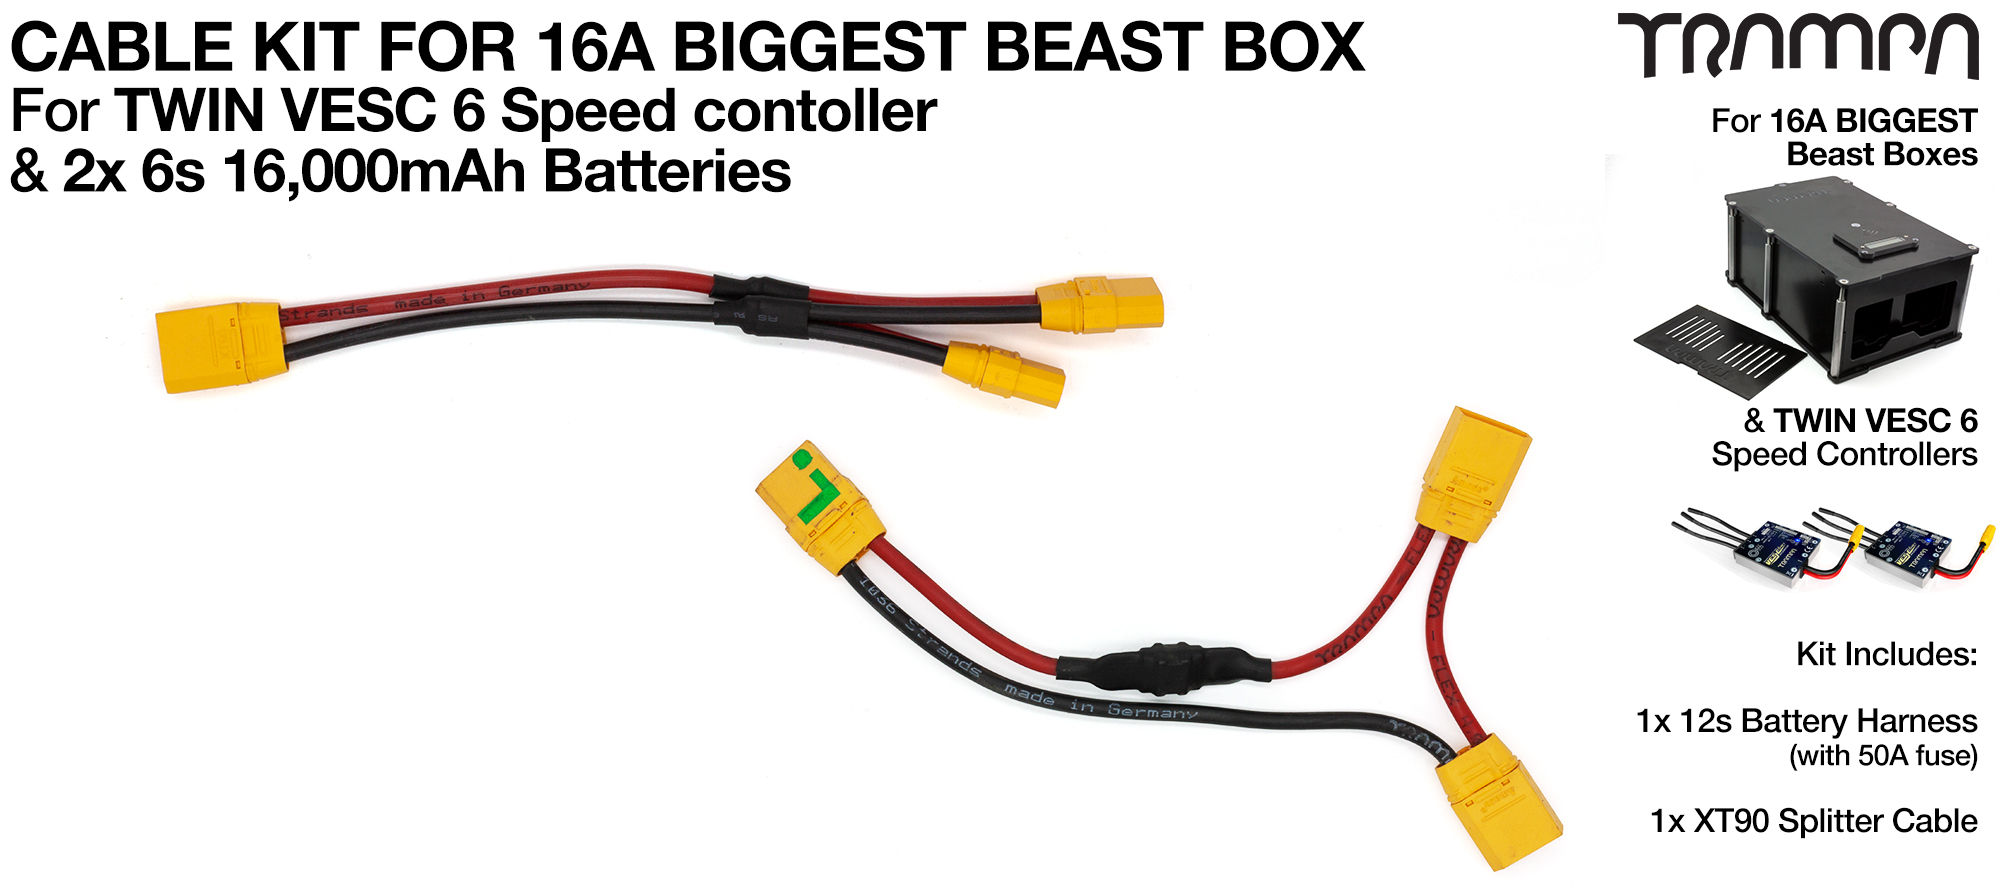 Complete 16A BIGGEST BEST Box Cable Kit for TWIN VESC 6 with 50 Amp Fuse all soldered & heat sealed ready for plug & play use & of course TRAMPA Stamped 1036 strand Silicon coated Cable!